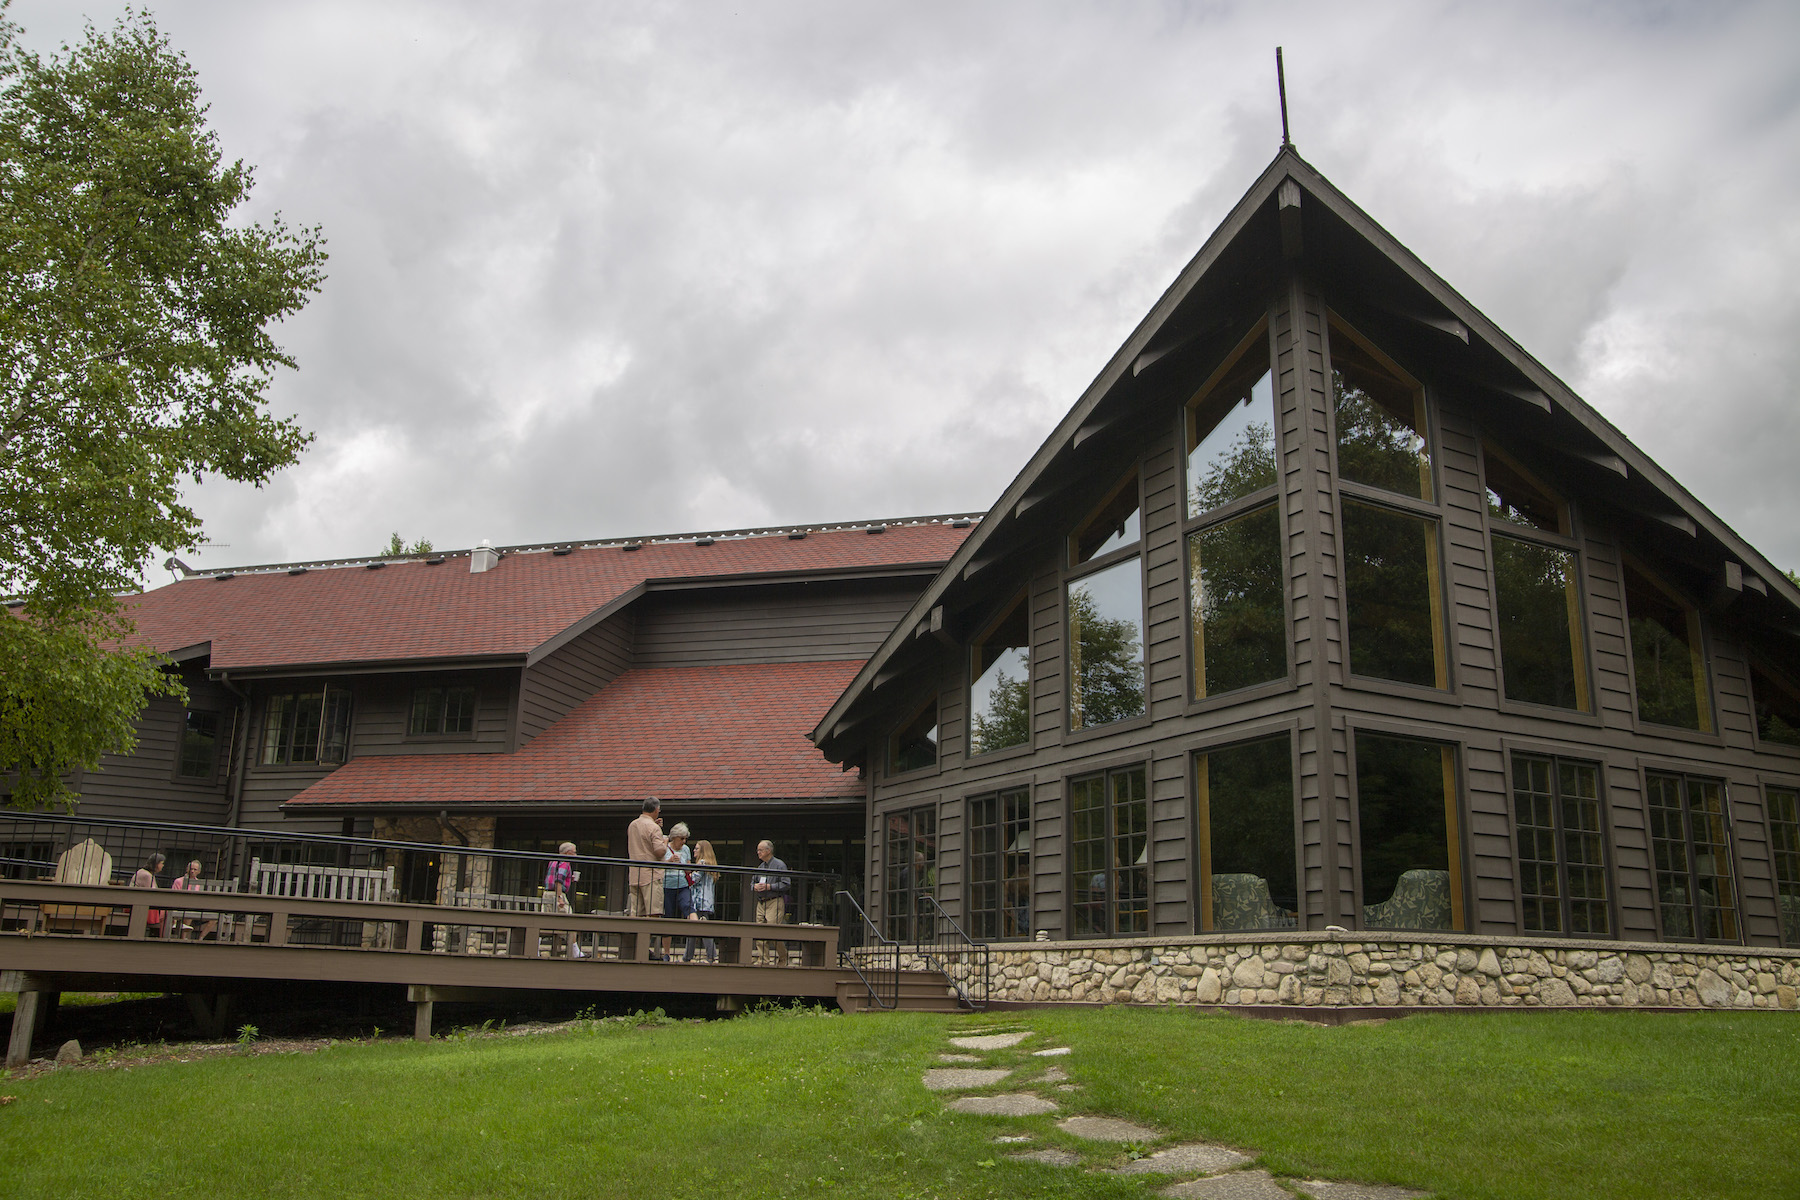 Summer seminar participants gather on the deck of the lodge at Bjorklunden during the summer of 2019.